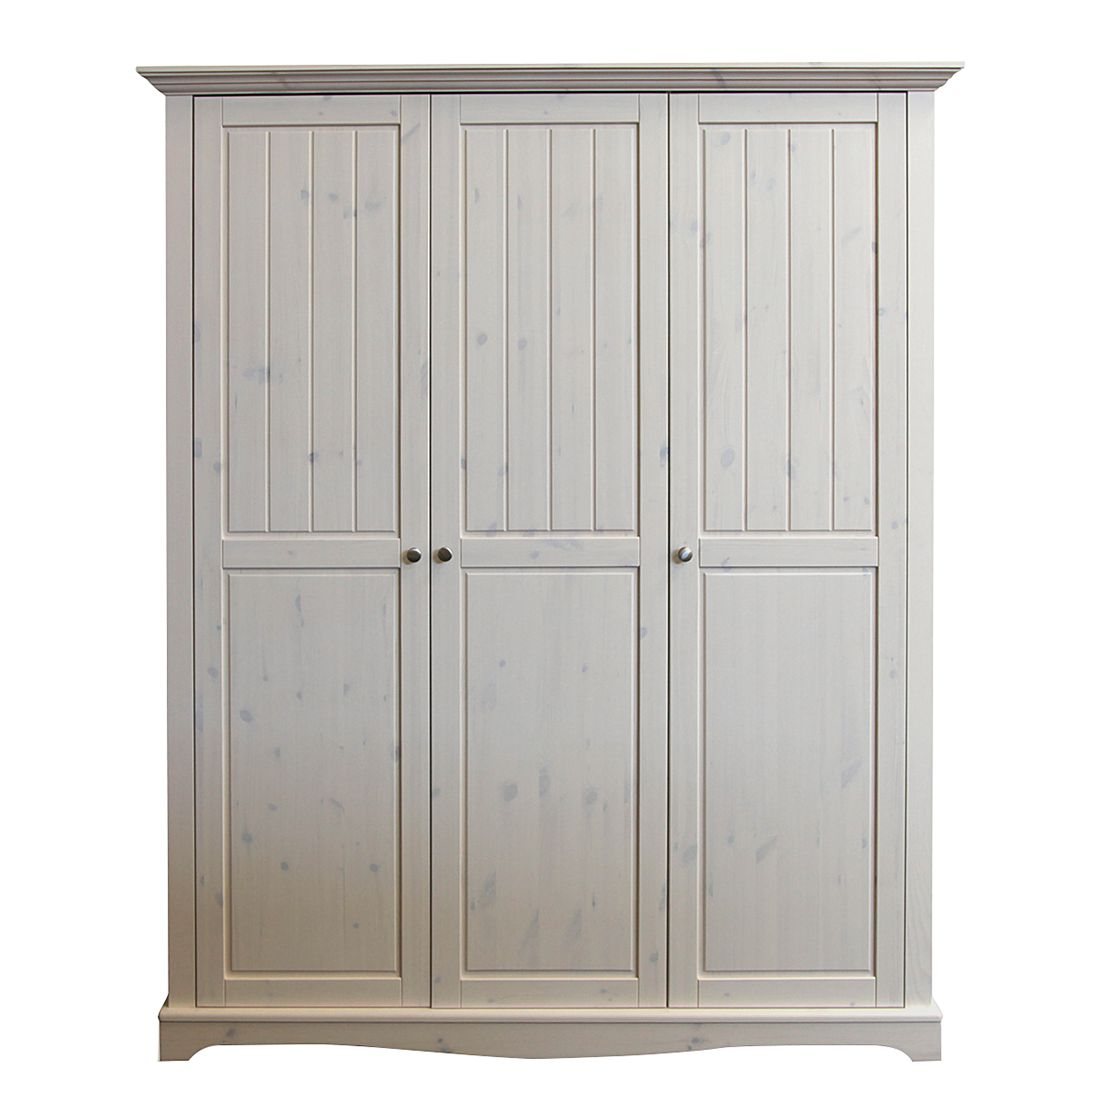 kleiderschrank karlotta 3 t rig kiefernholz white wash. Black Bedroom Furniture Sets. Home Design Ideas